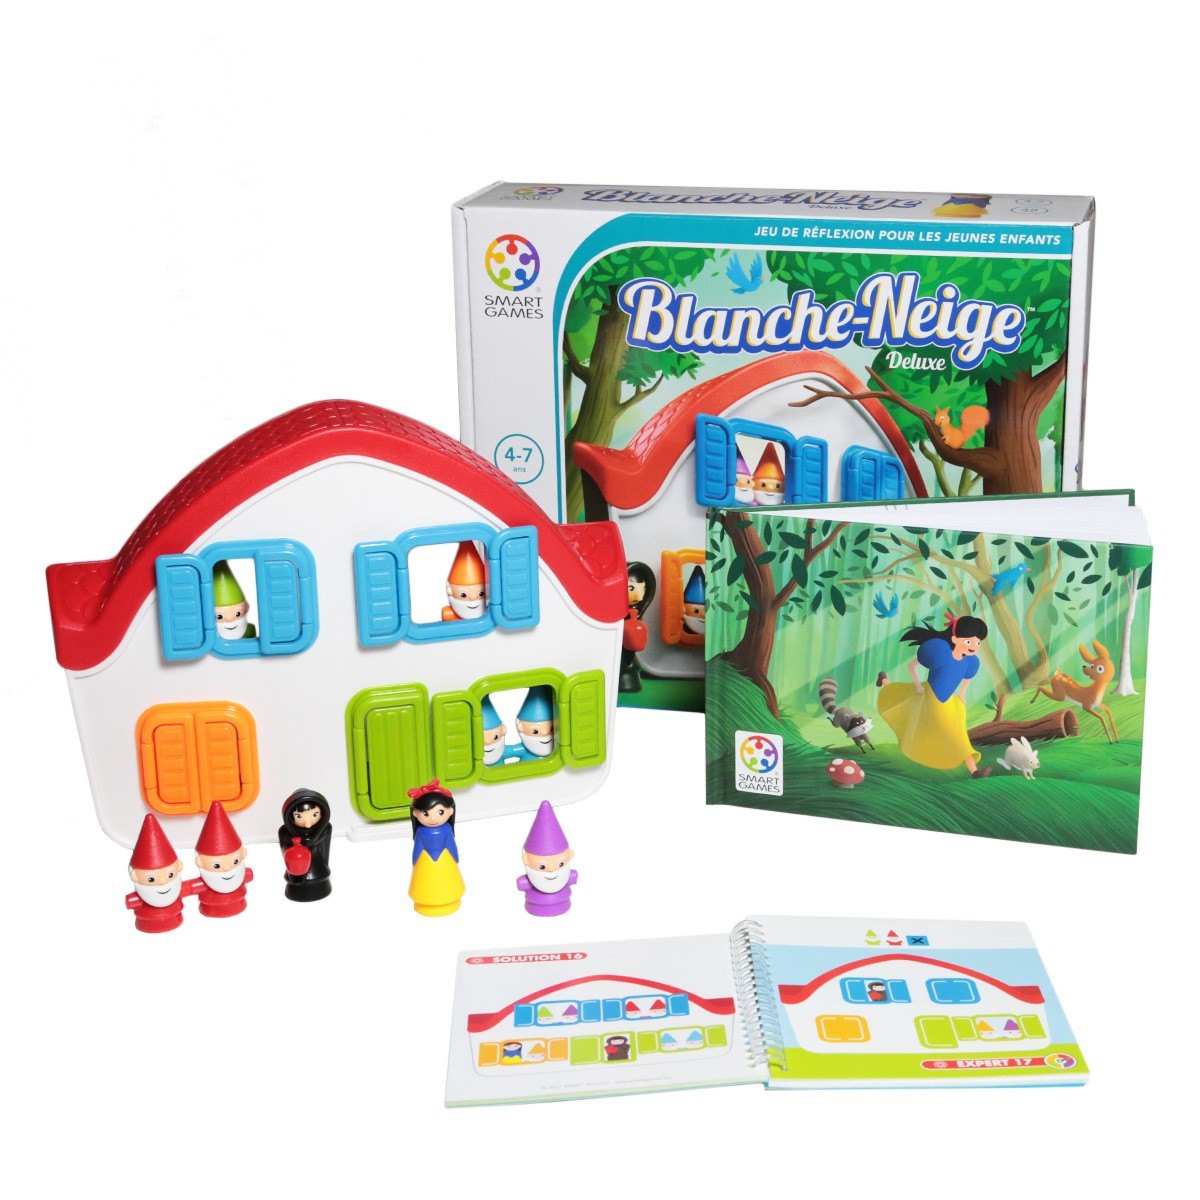 Blanche-Neige Deluxe - ouvert - image/jpeg